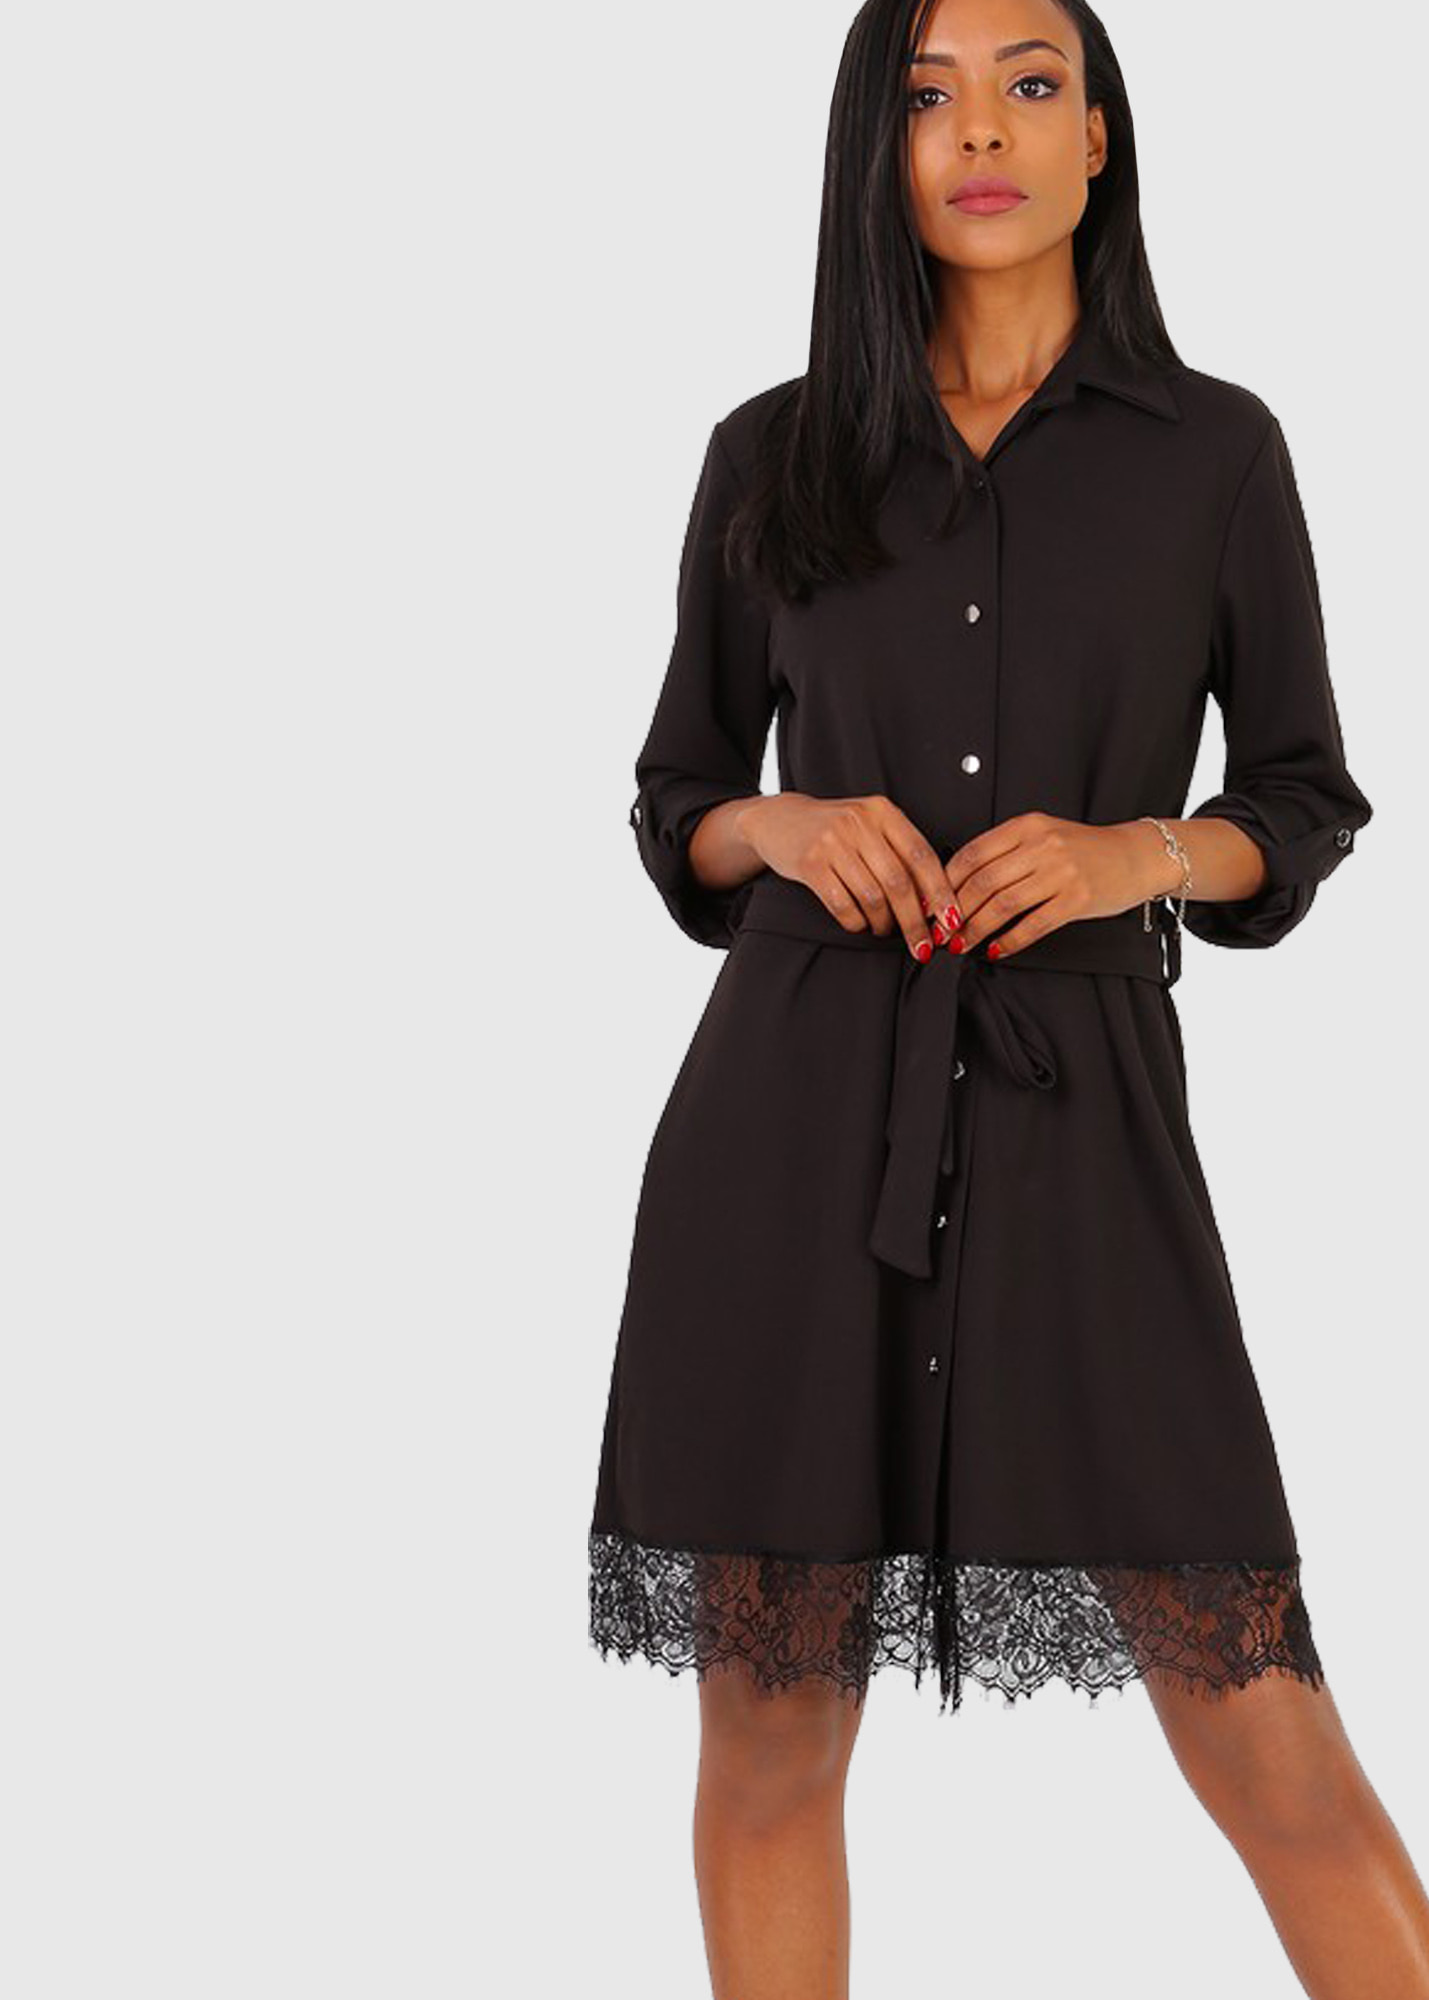 Nunziella italian black shirt dress